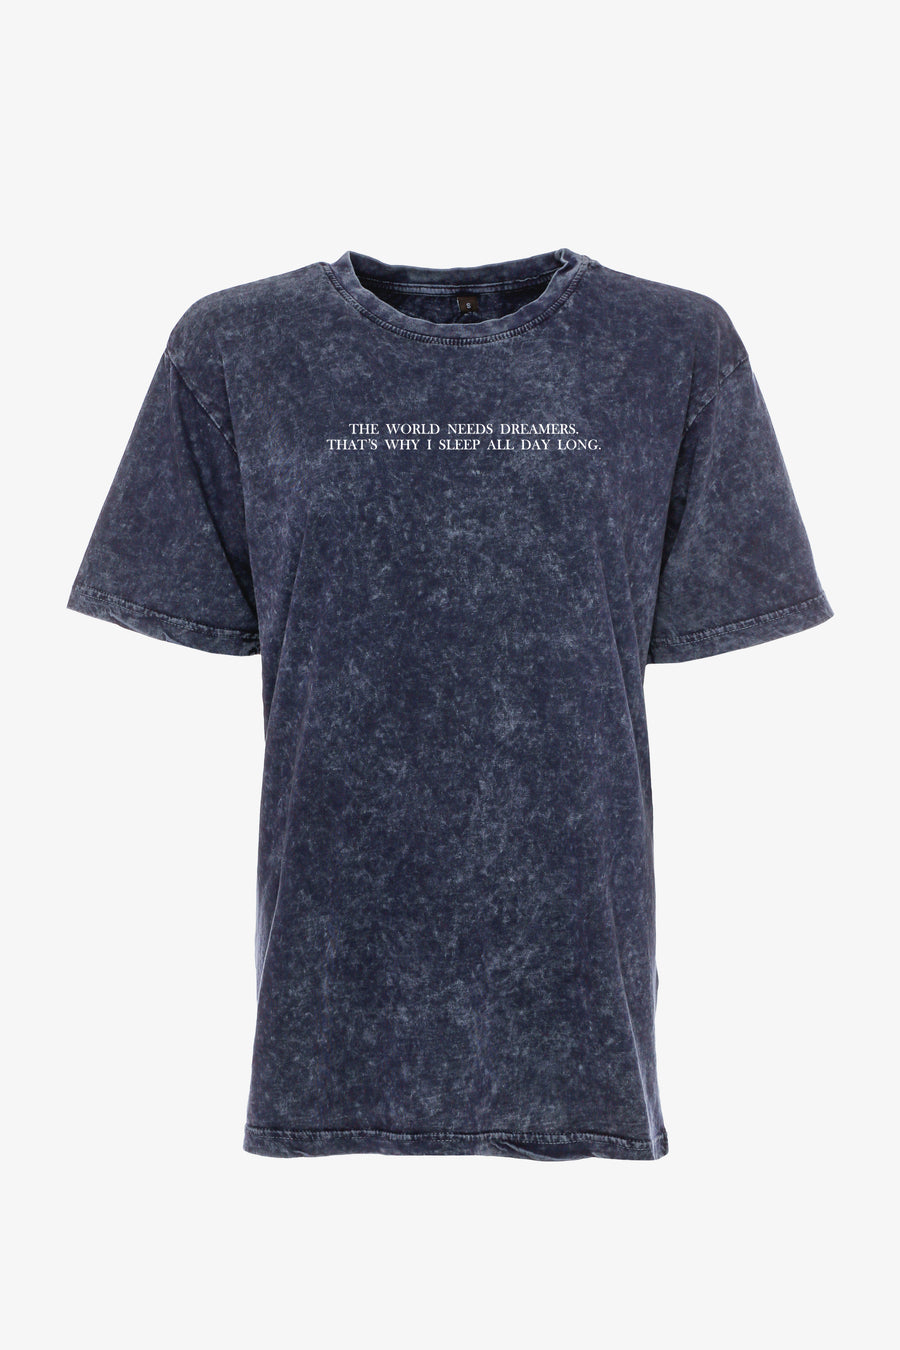 Gossengold - the world needs more dreamers Statement T Shirt Damen -  washed blue